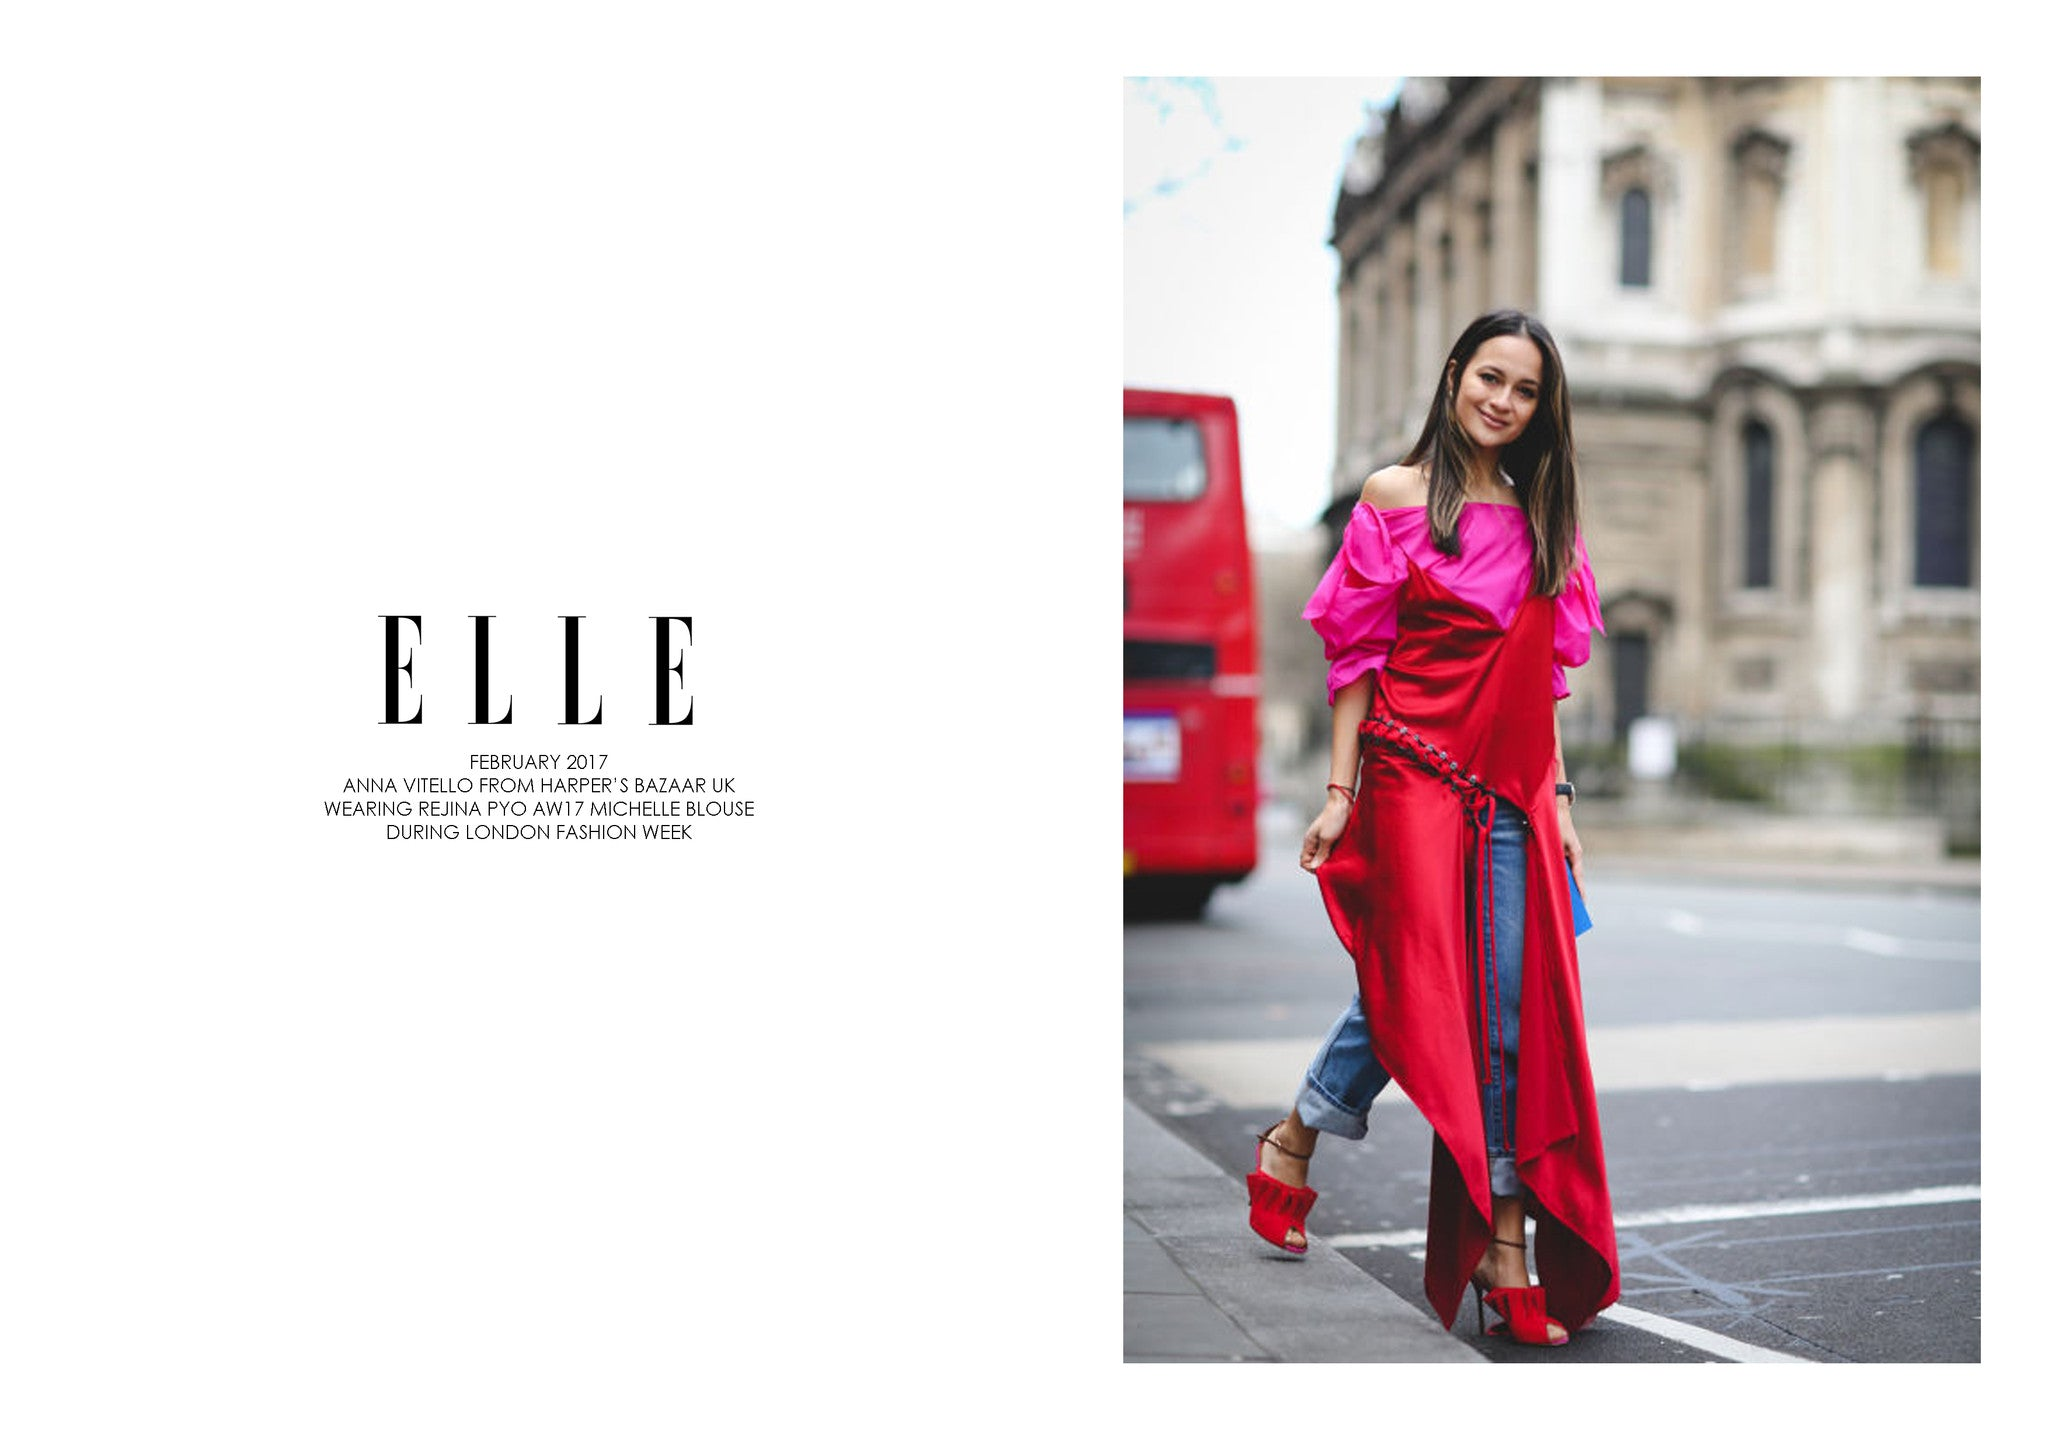 ELLE UK: FEATURING REJINA PYO AW17 MICHELLE BLOUSE DURING LFW